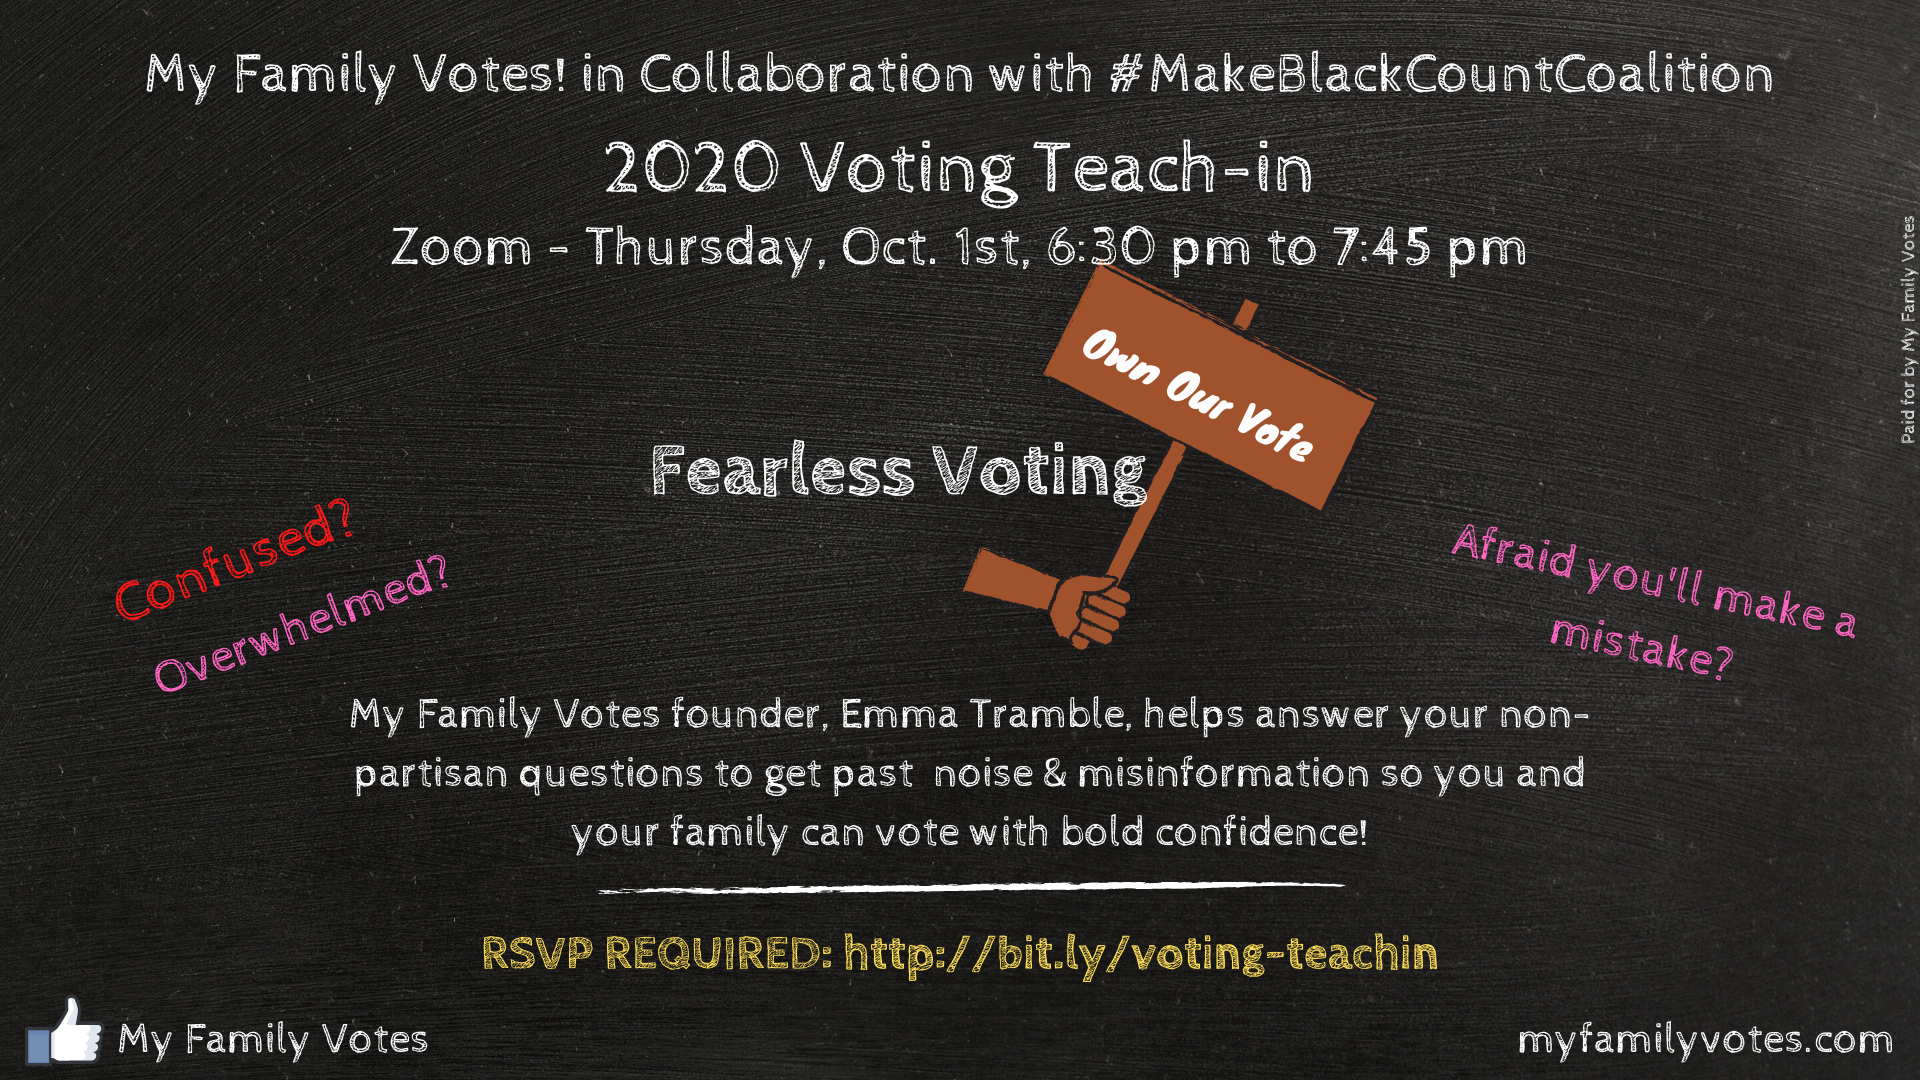 Fearless Voting - Own Our Vote